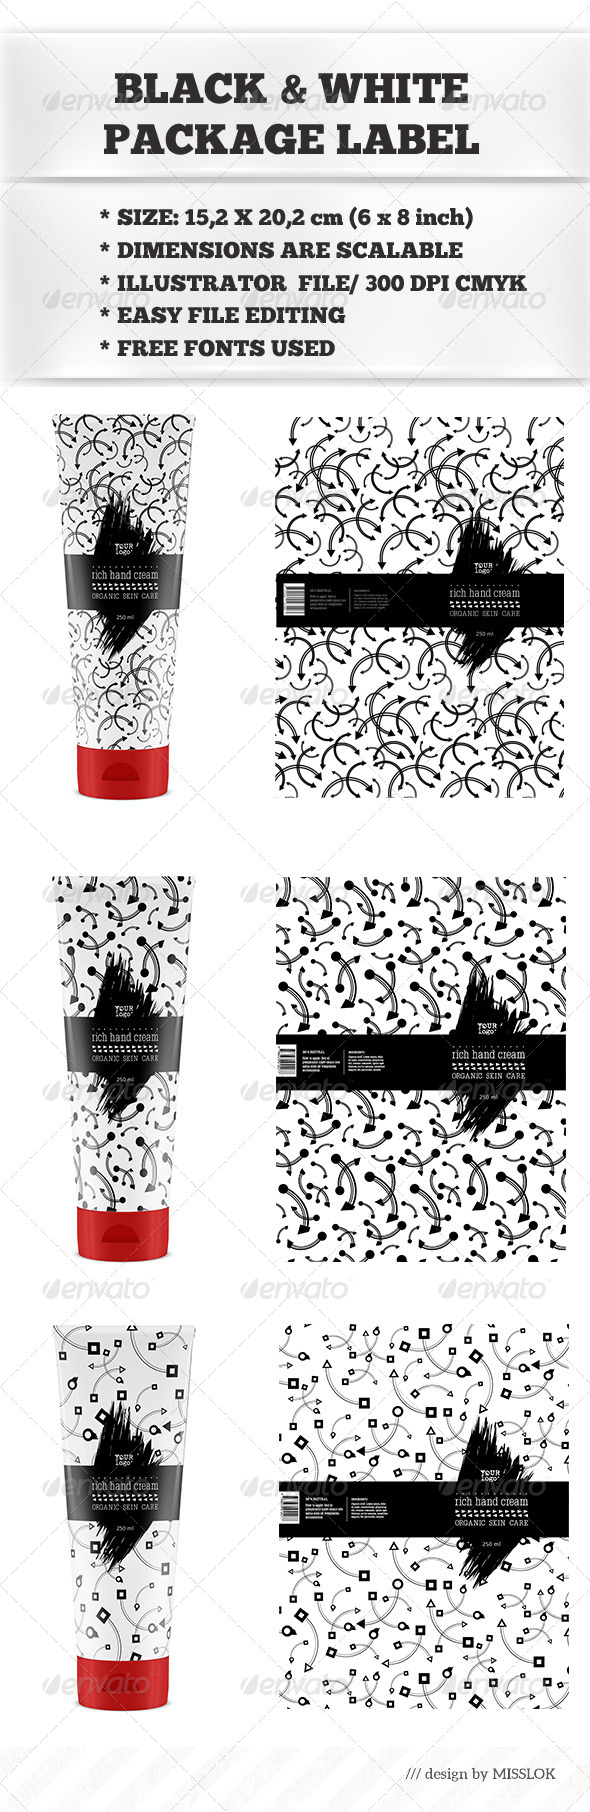 GraphicRiver Black & White Package Labels 8729102